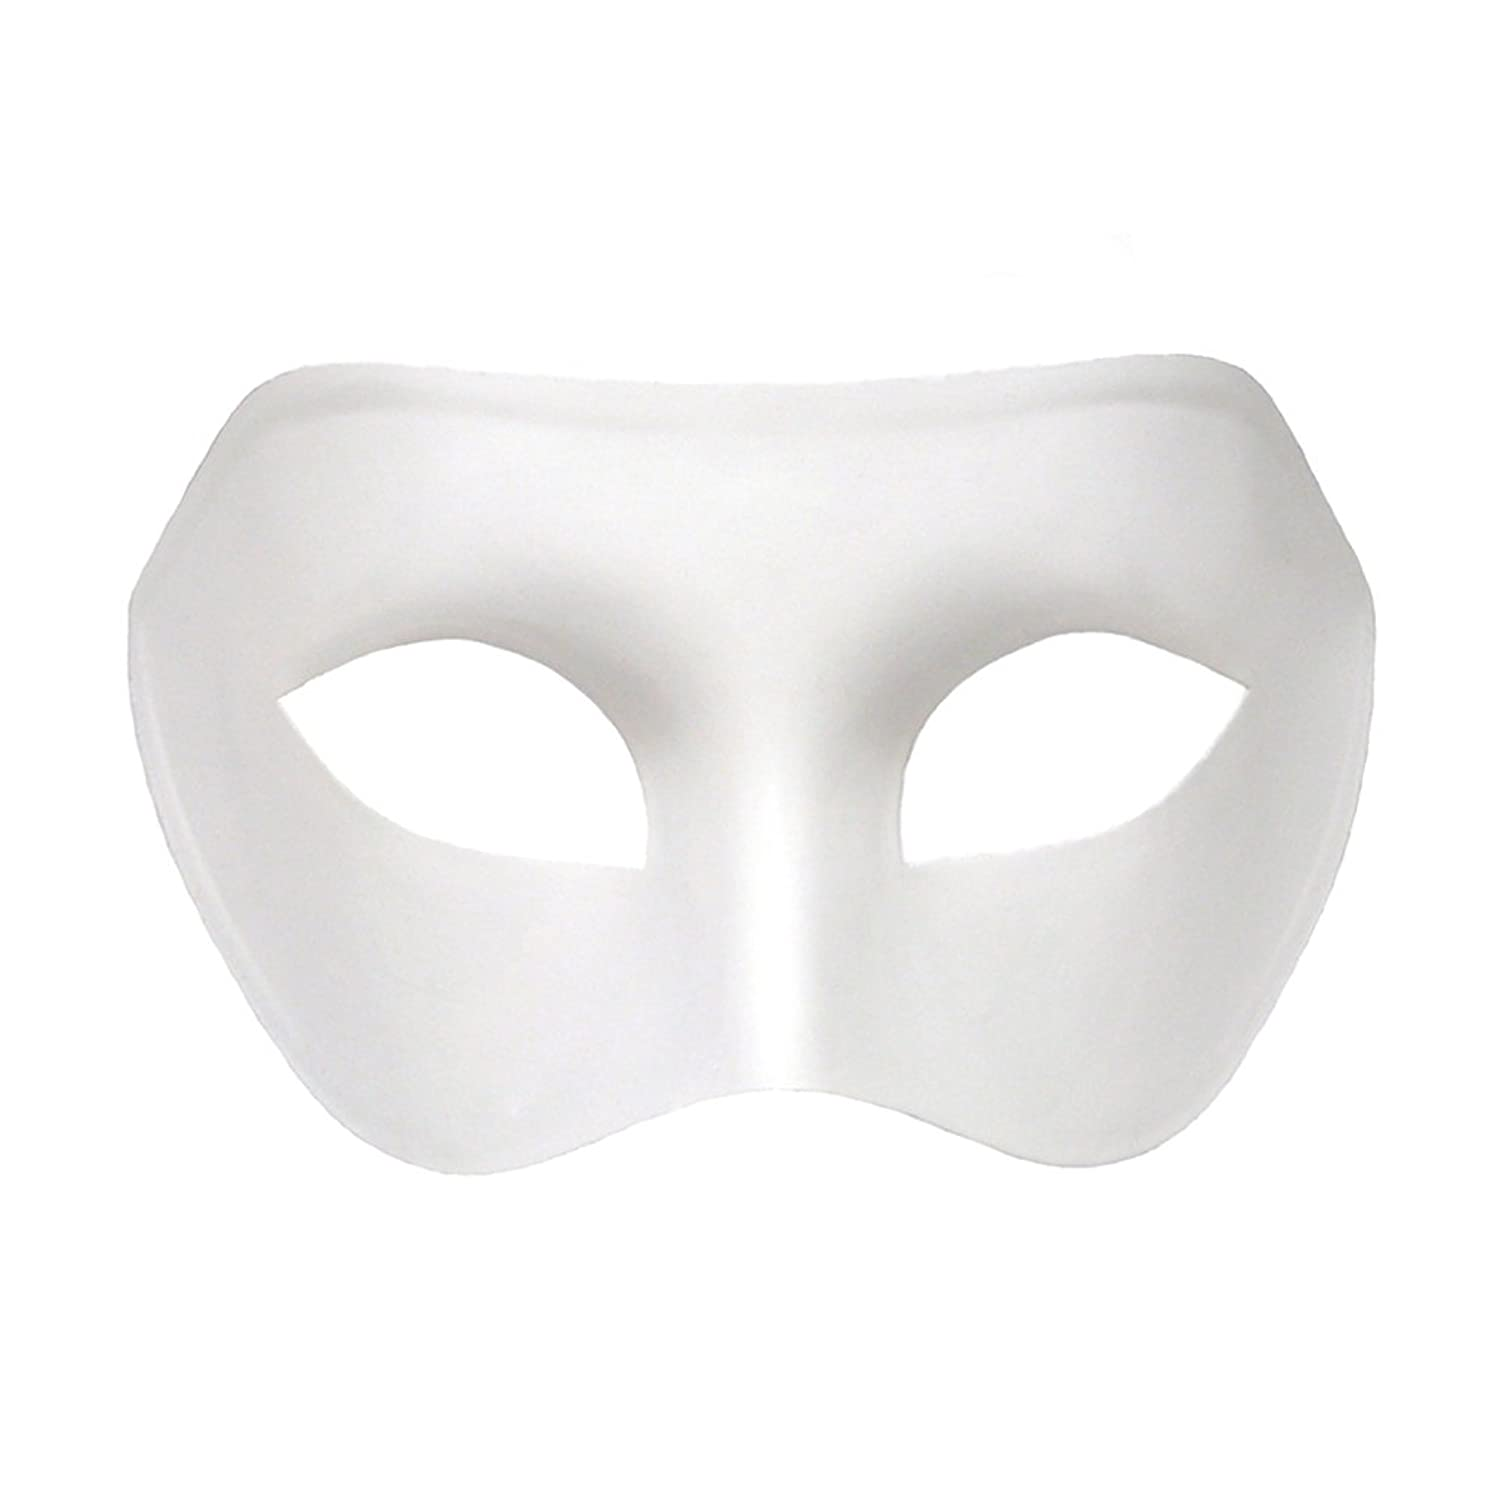 Amazon white venetian masquerade mask mardi gras masks amazon white venetian masquerade mask mardi gras masks stc12905 clothing pronofoot35fo Gallery